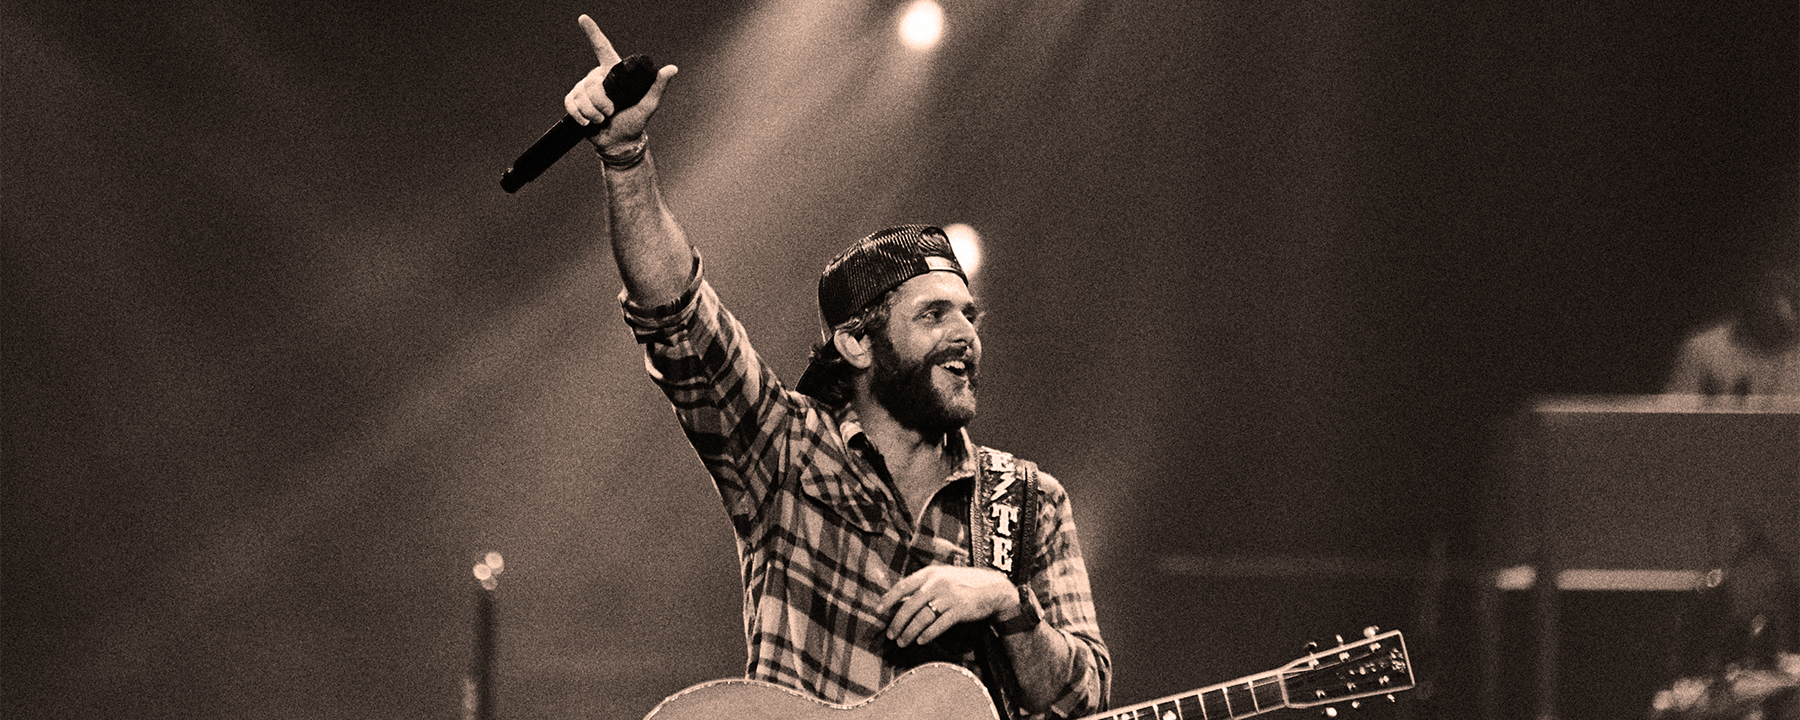 Thomas Rhett - Dec 06